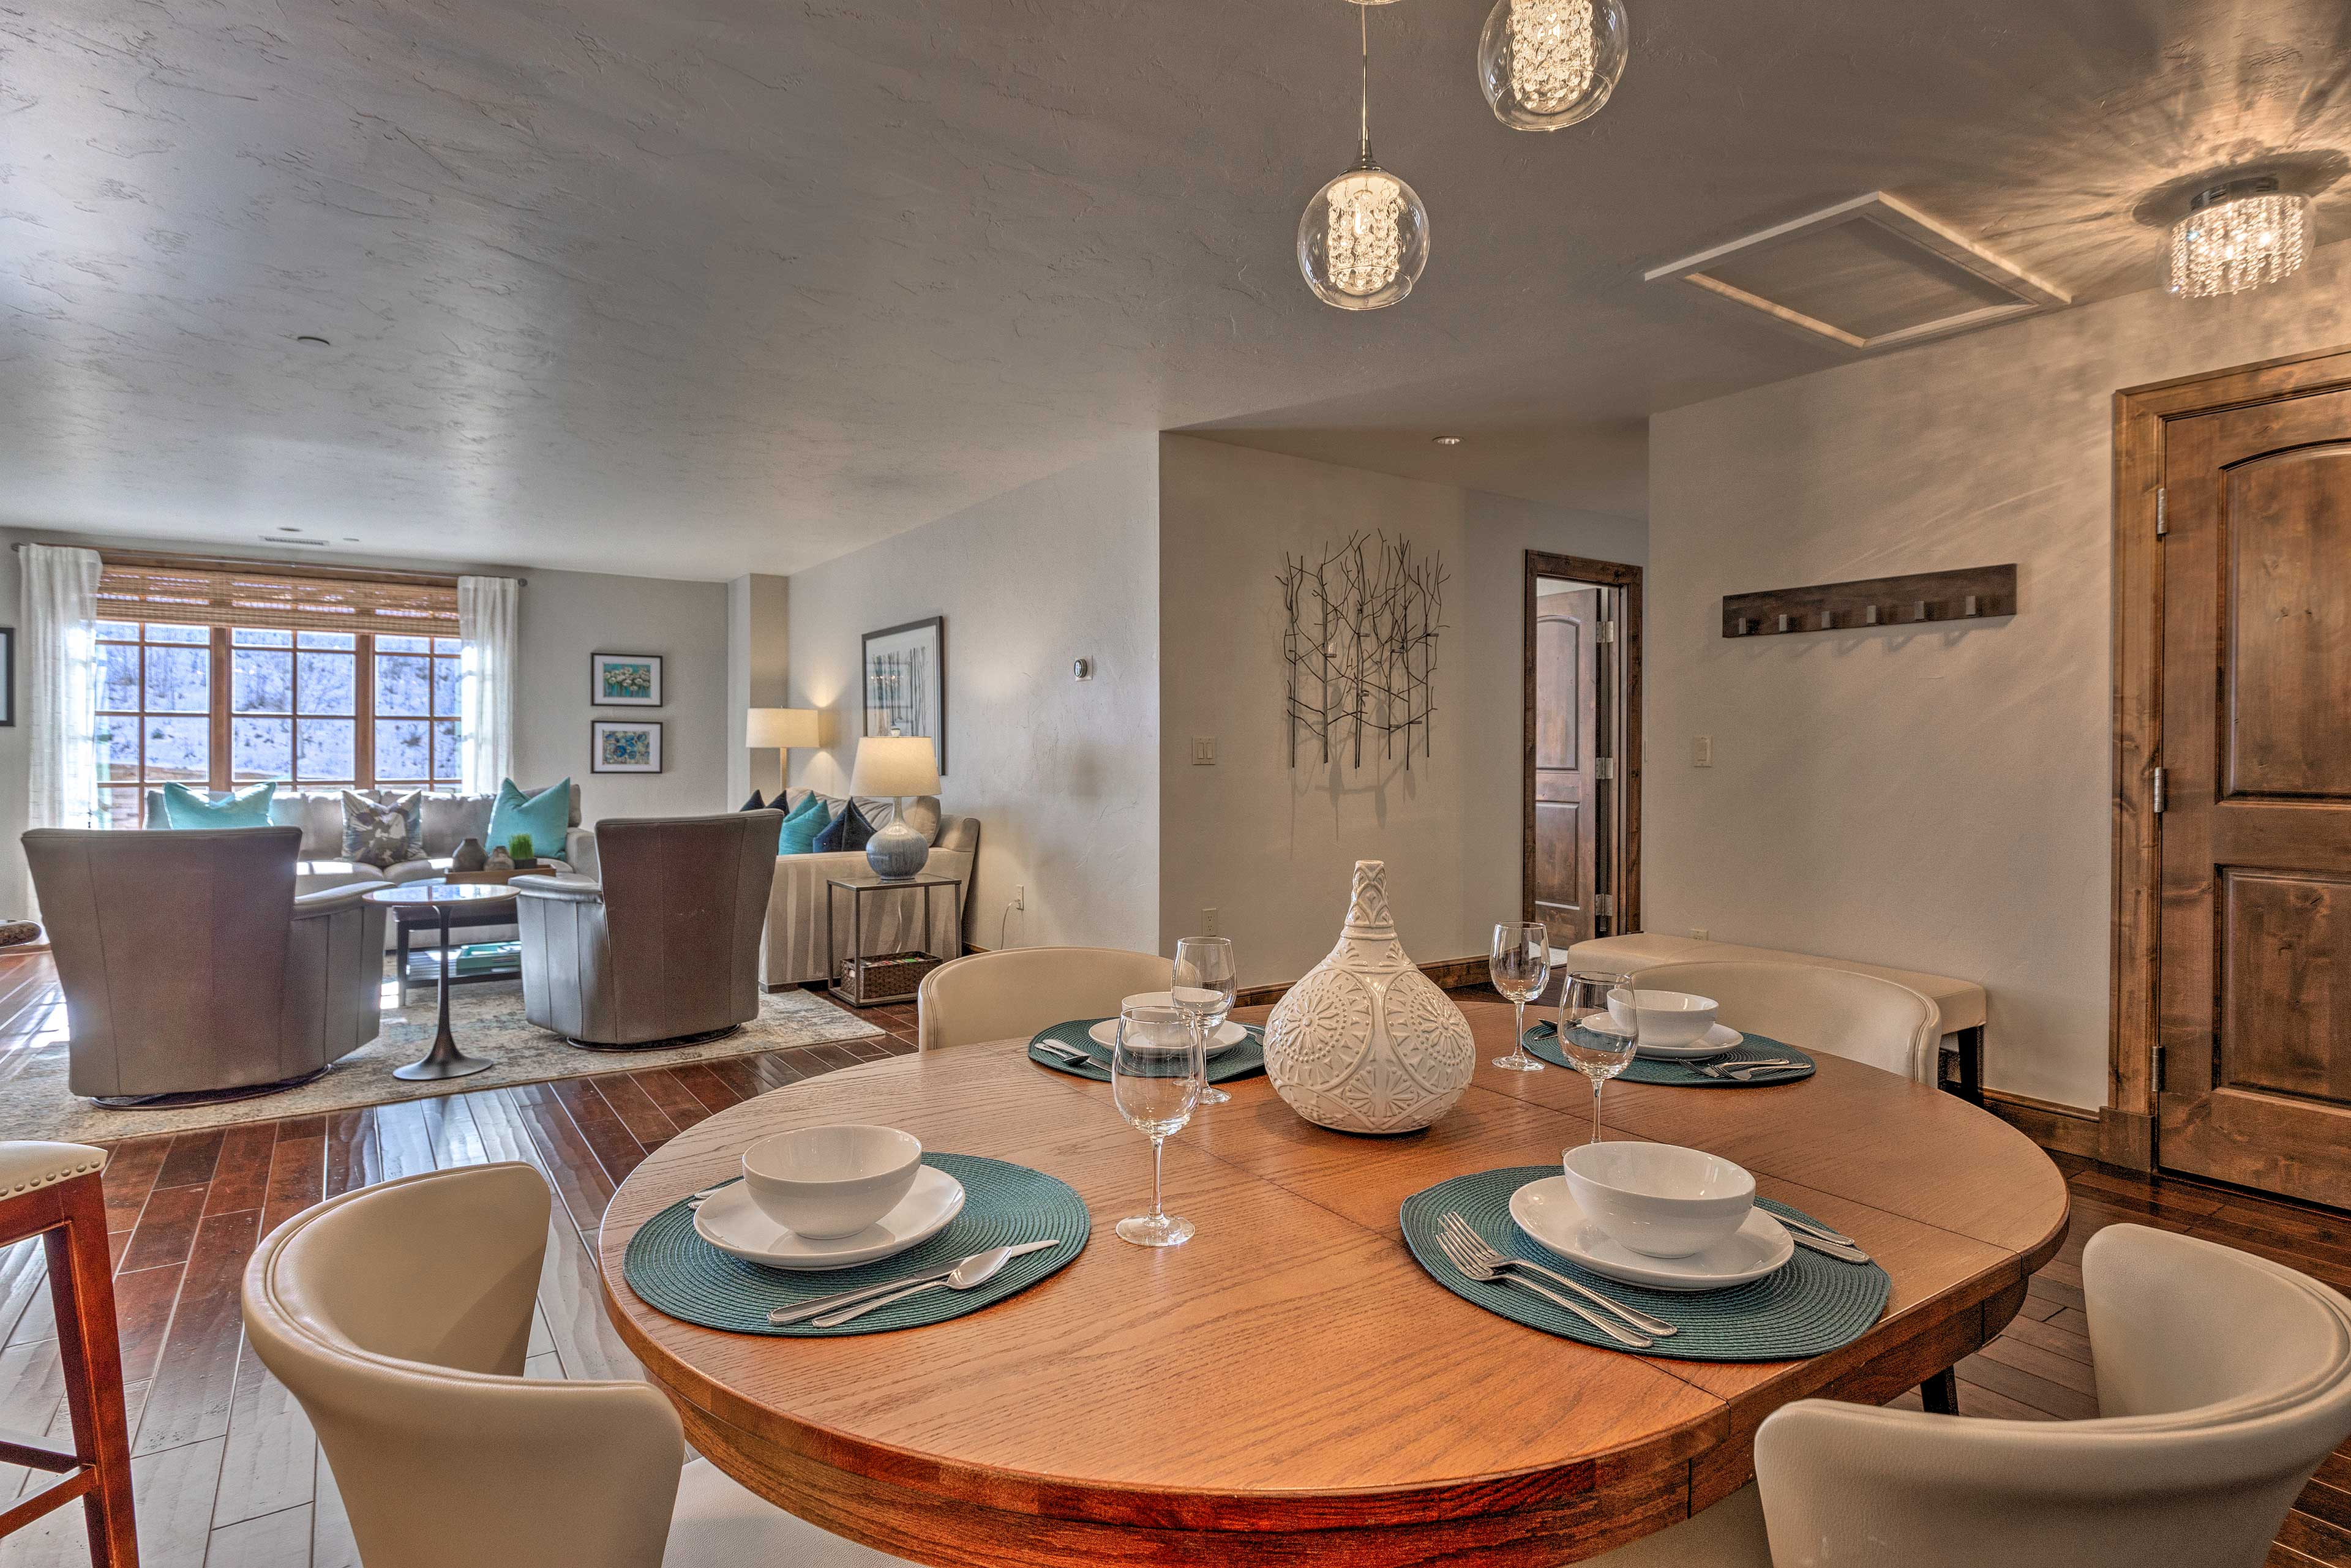 Enjoy home-cooked meals at the dining table.